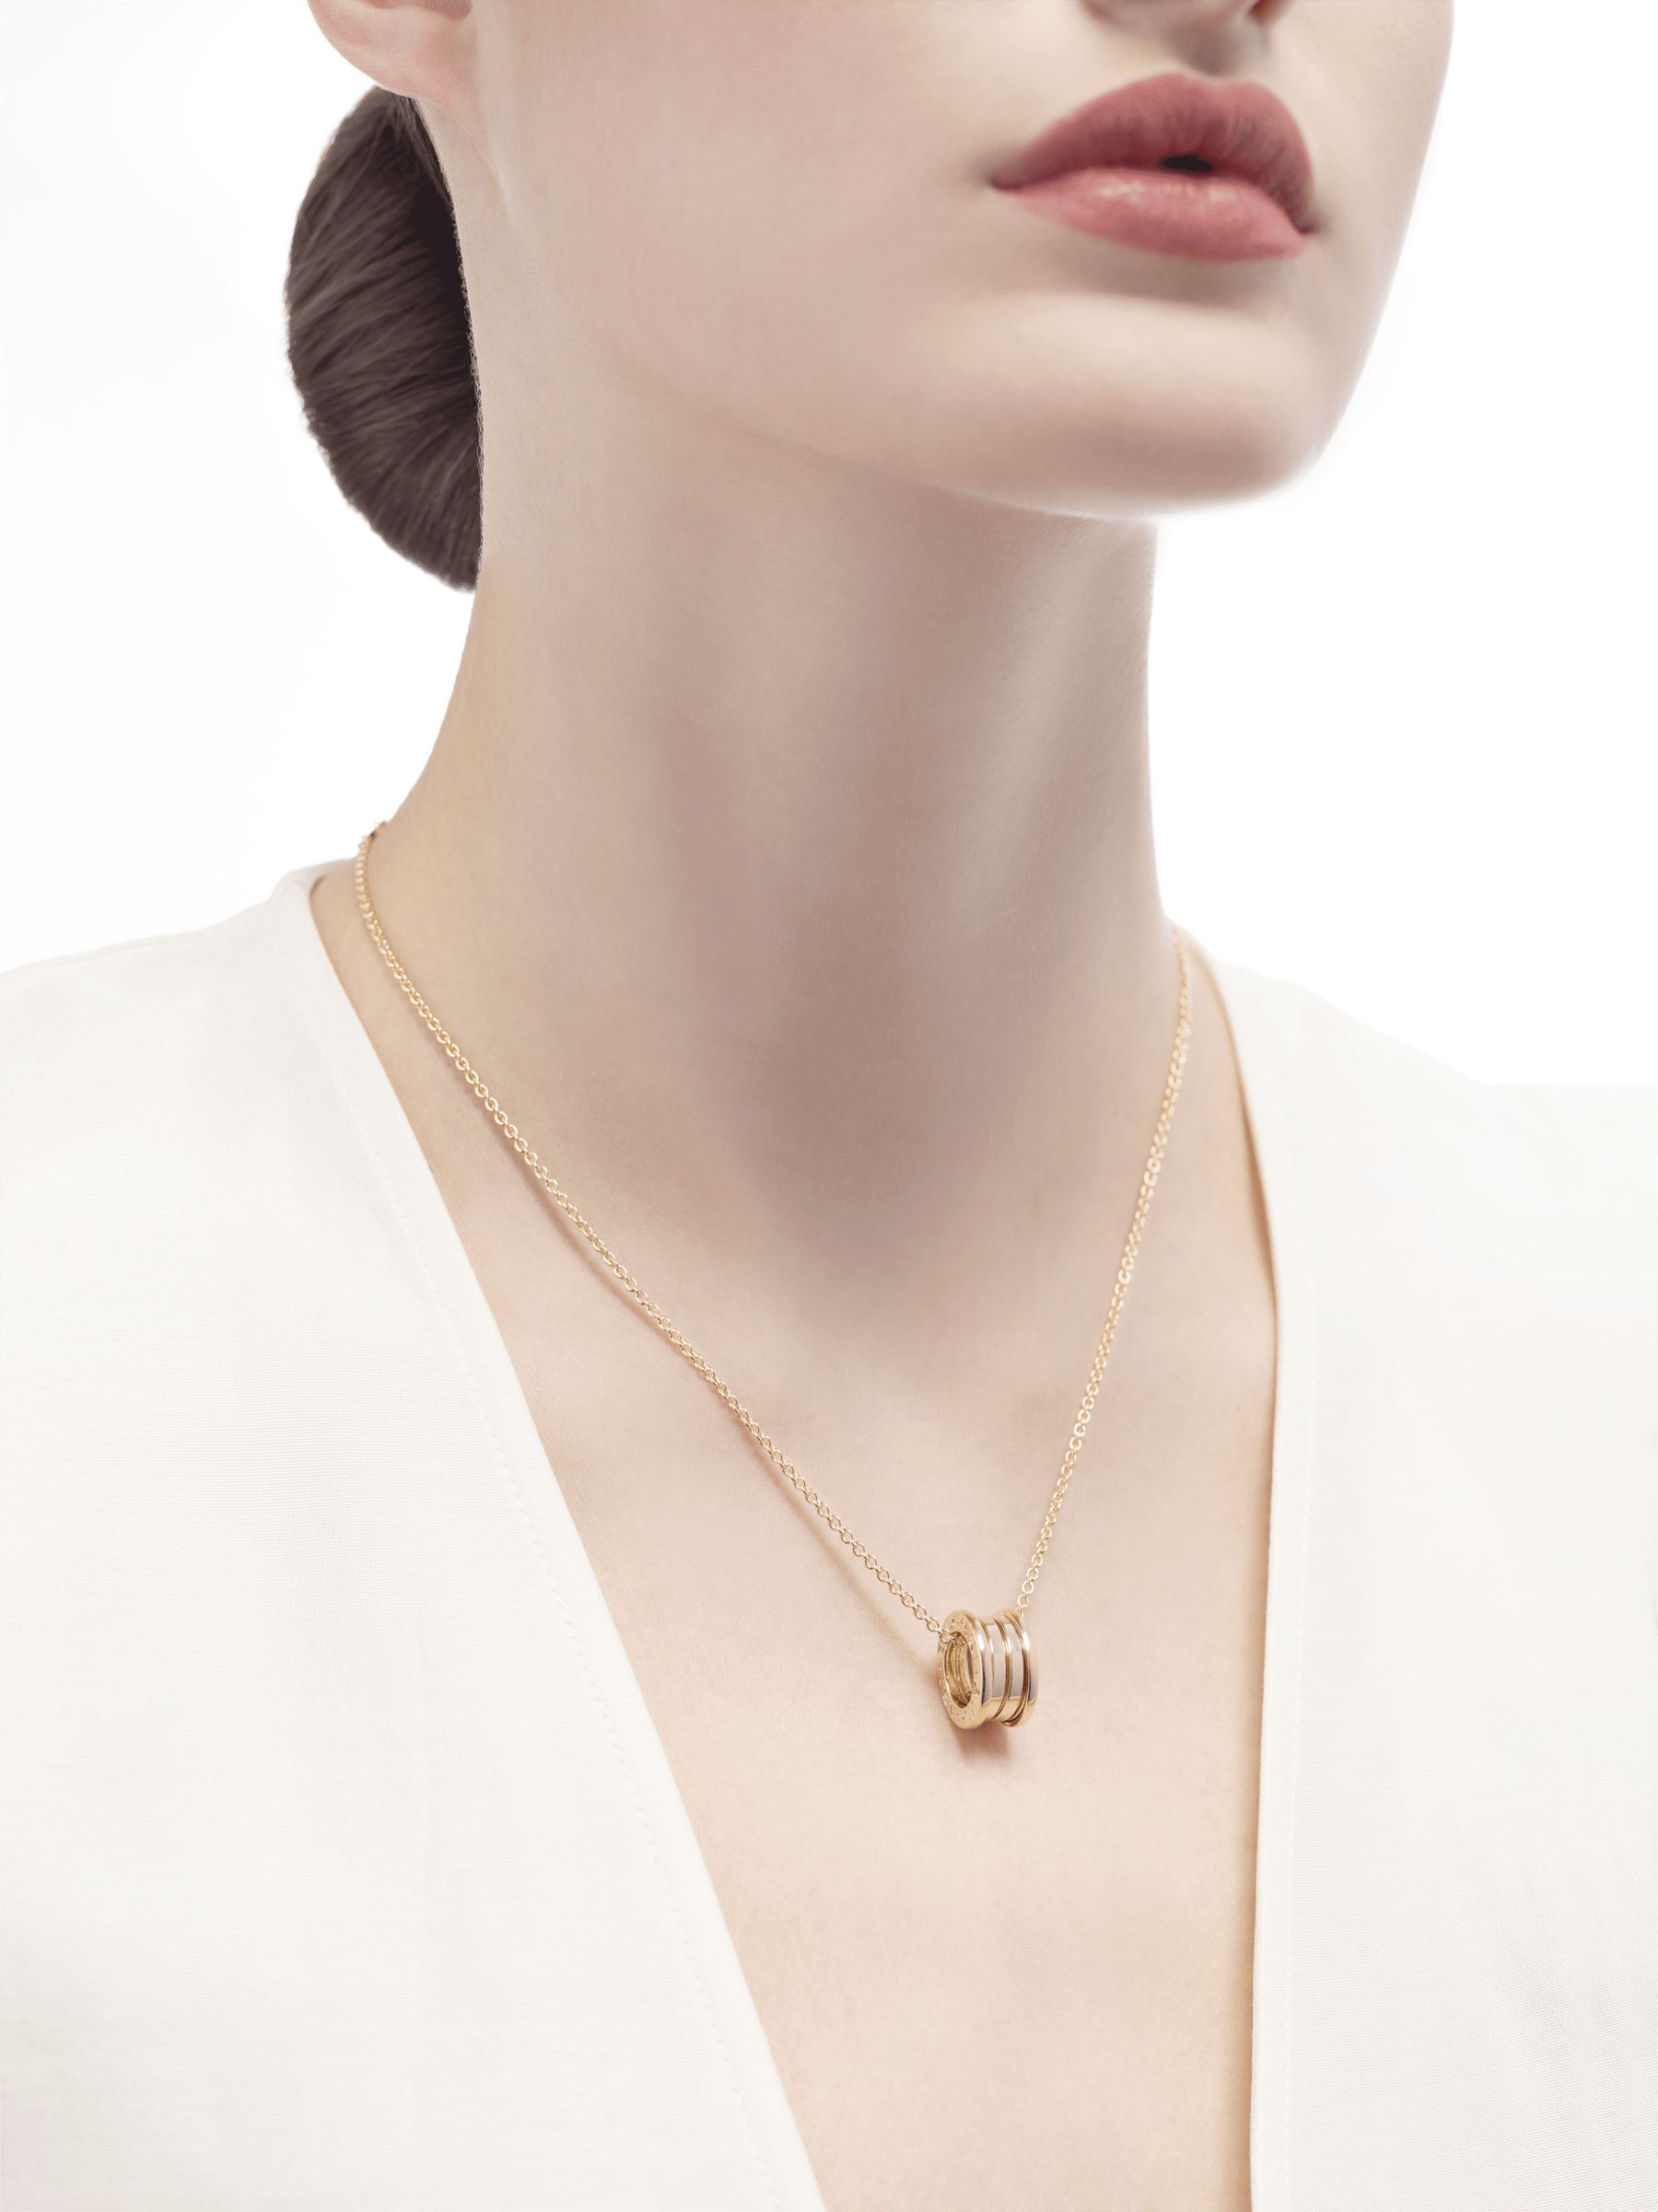 B.zero1 necklace with small round pendant, both in 18kt yellow gold. 352814 image 4